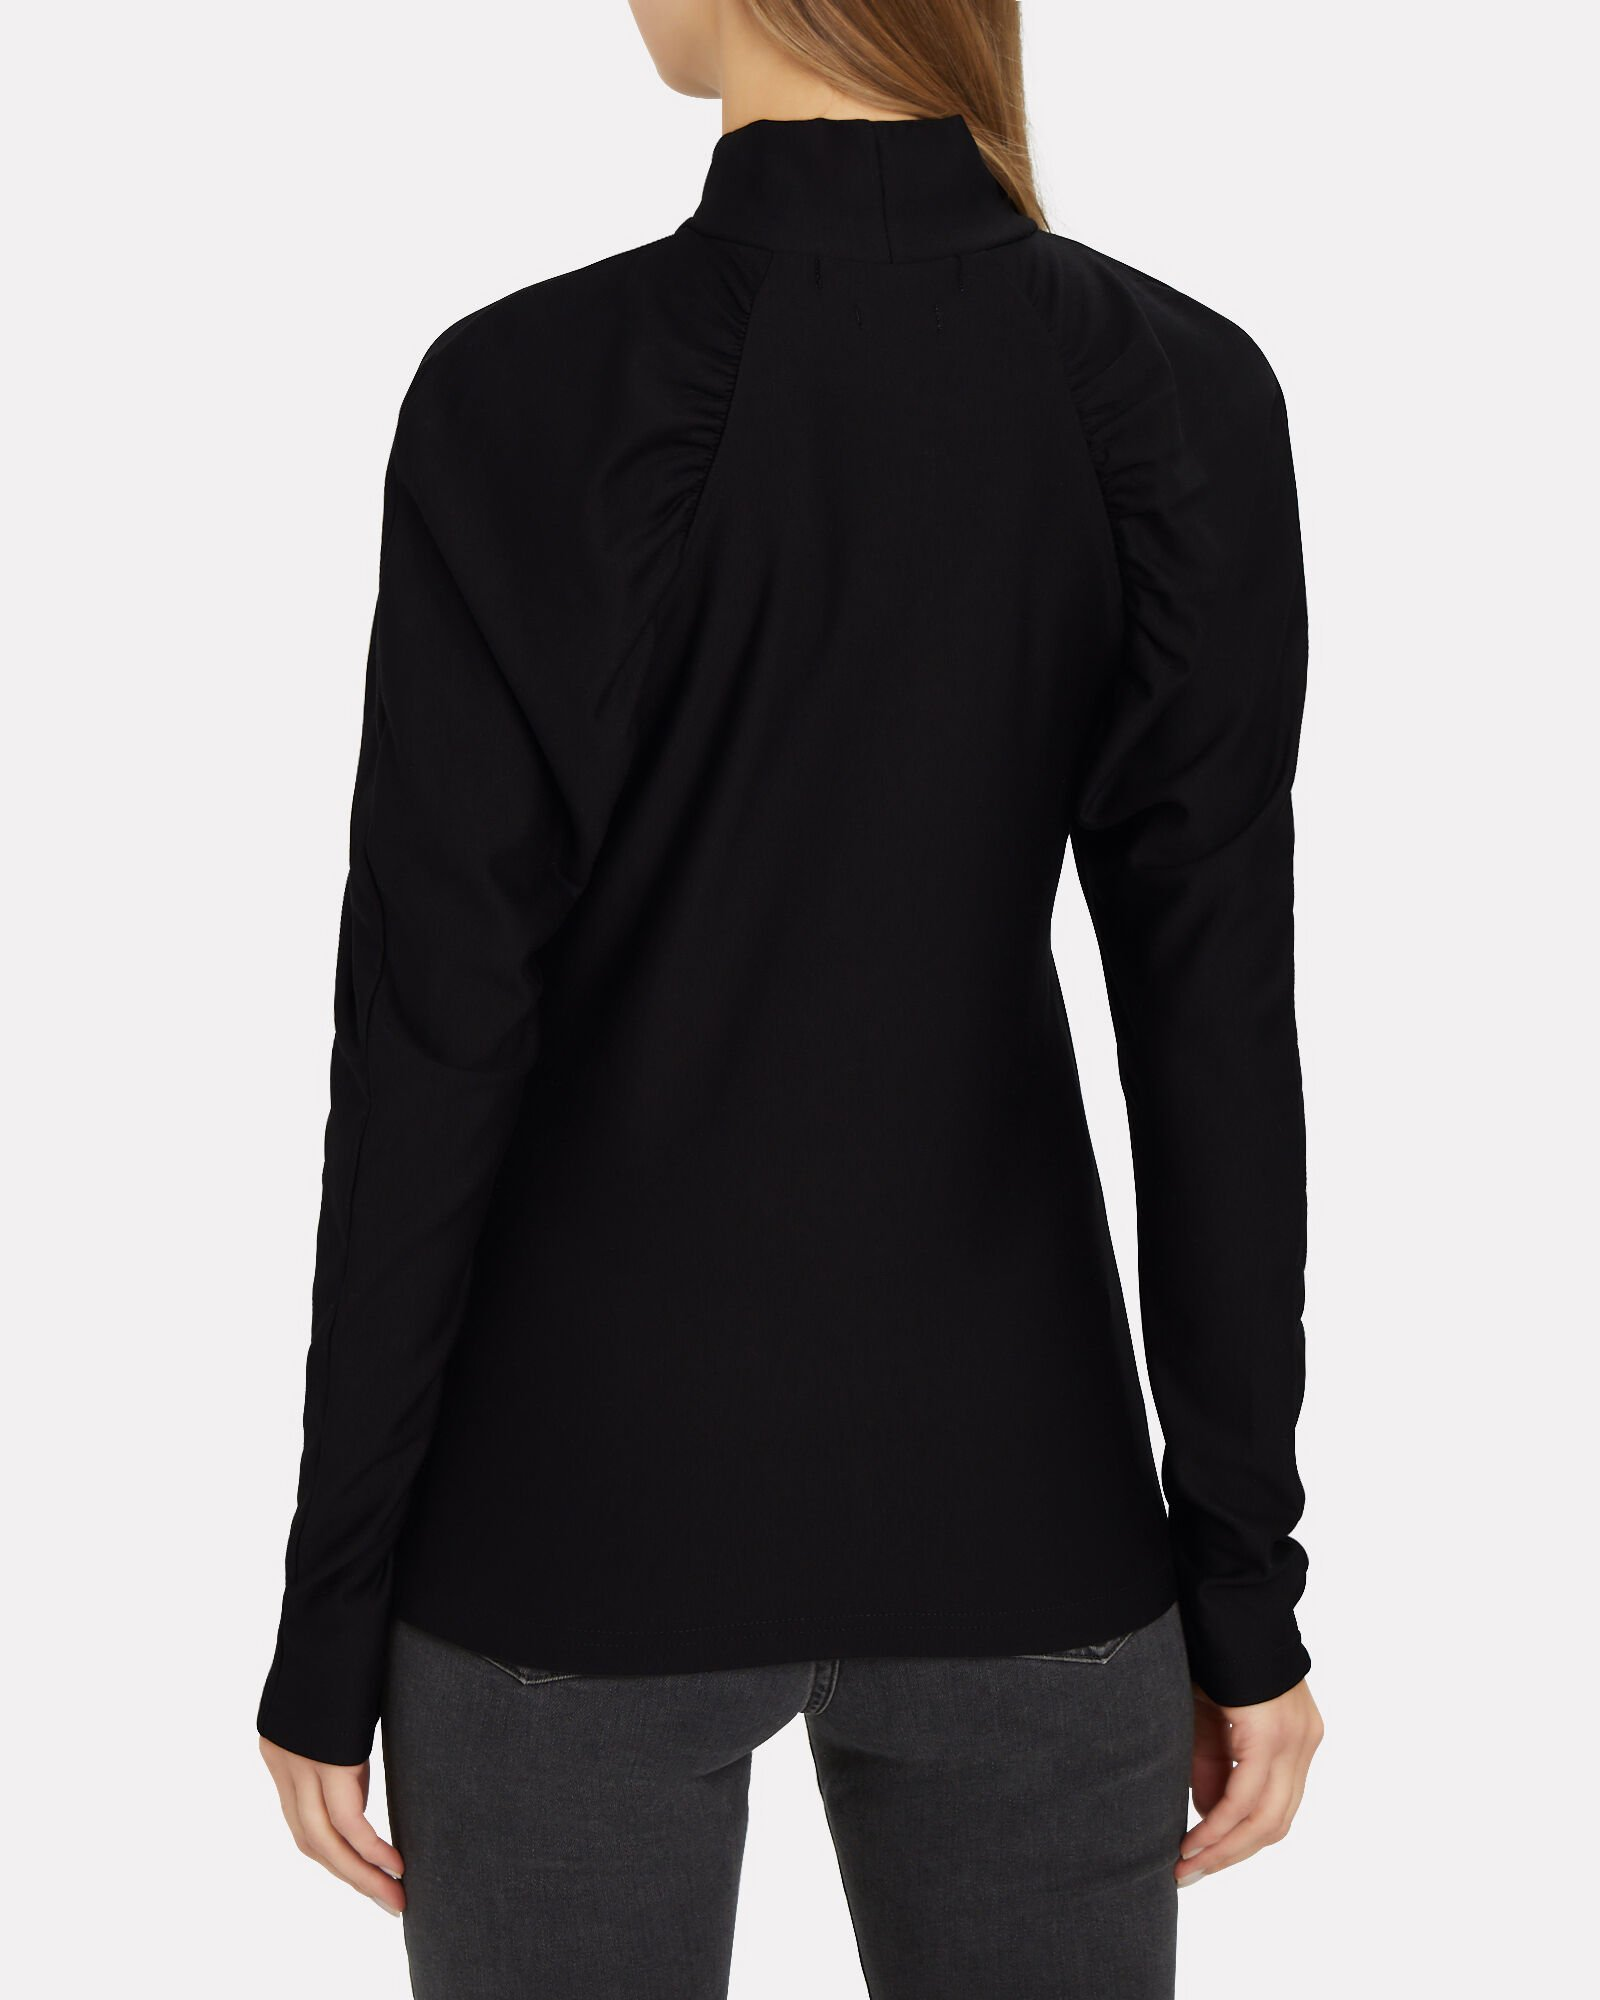 Rifa Gathered Turtleneck T-Shirt, BLACK, hi-res